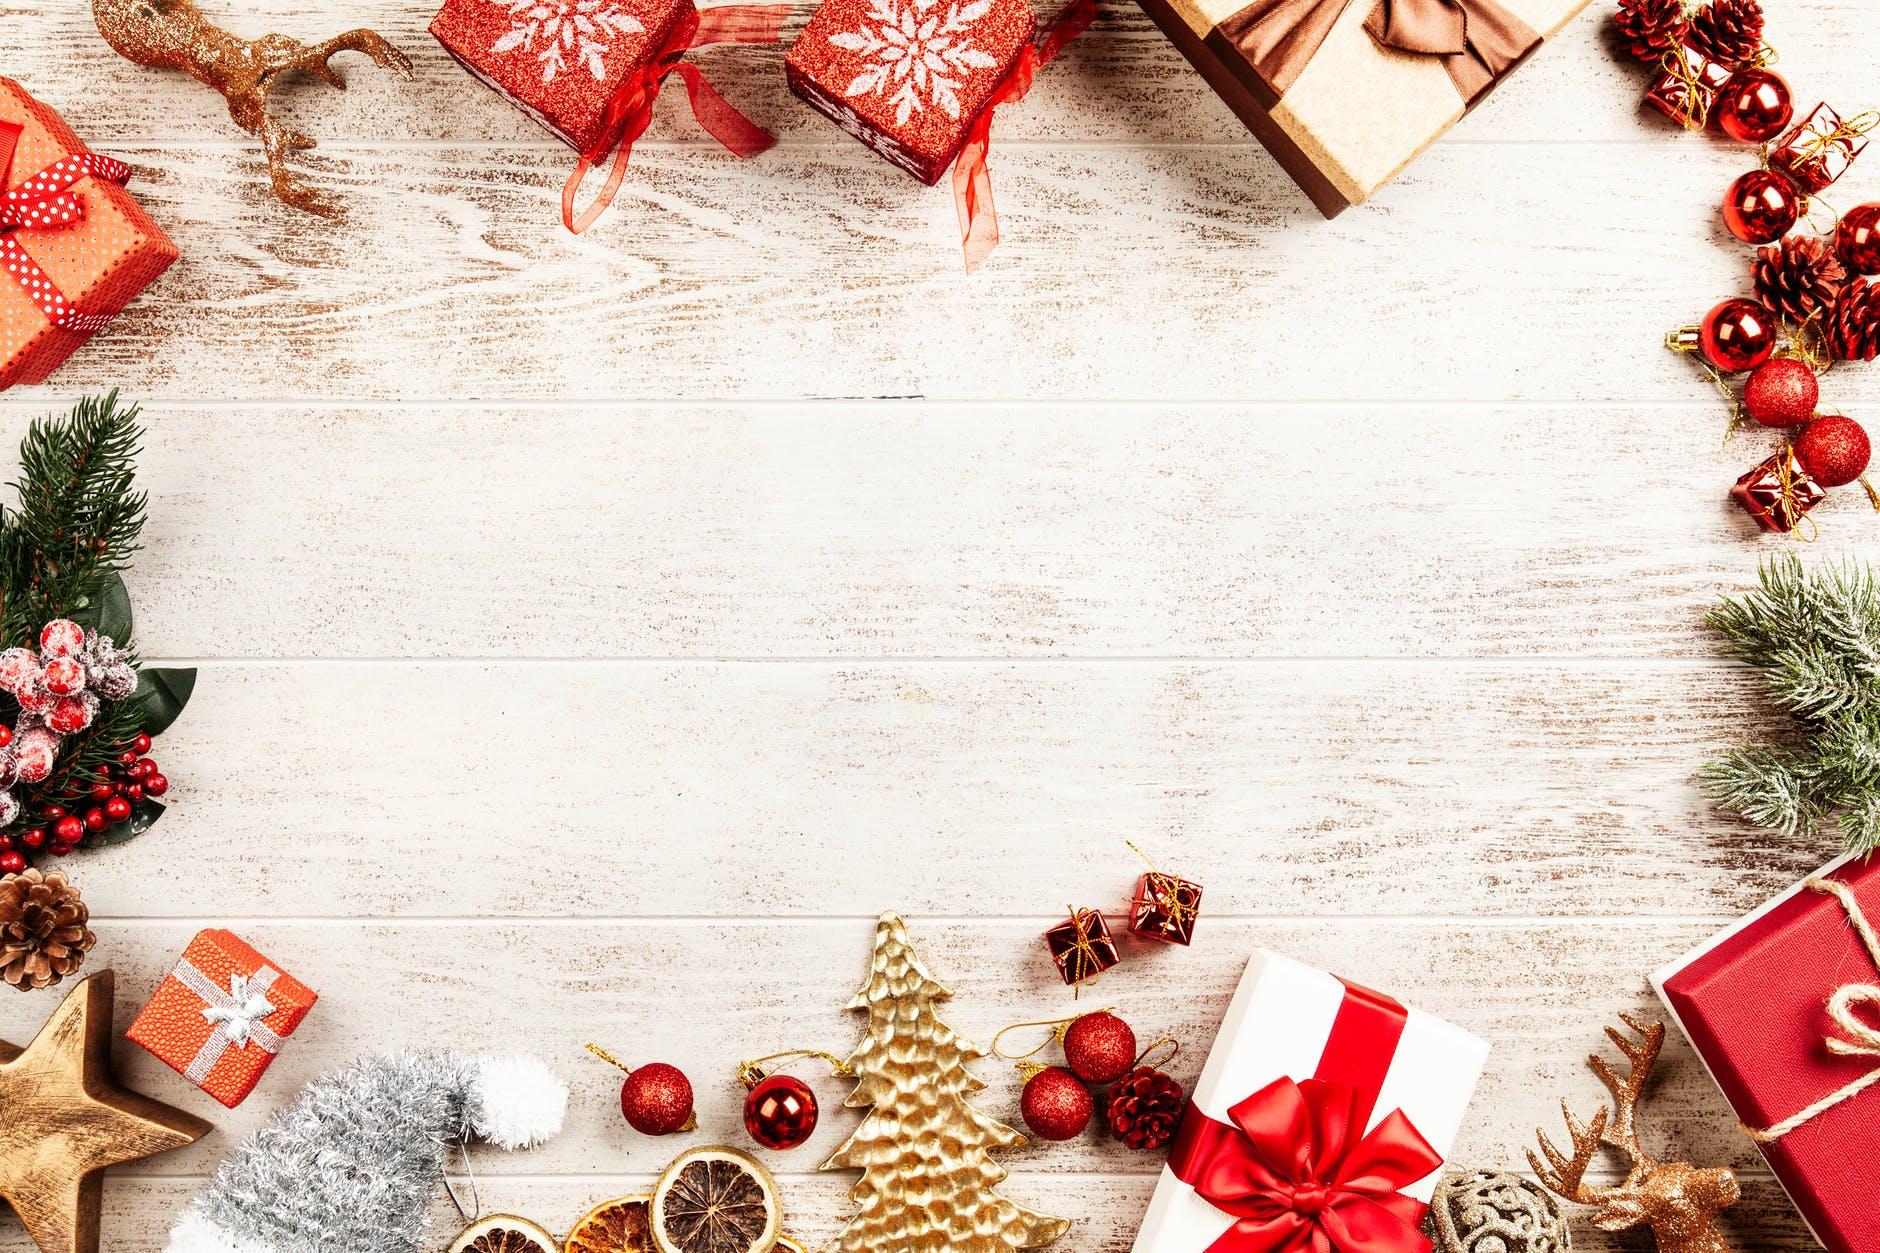 Floral Christmas Backgrounds